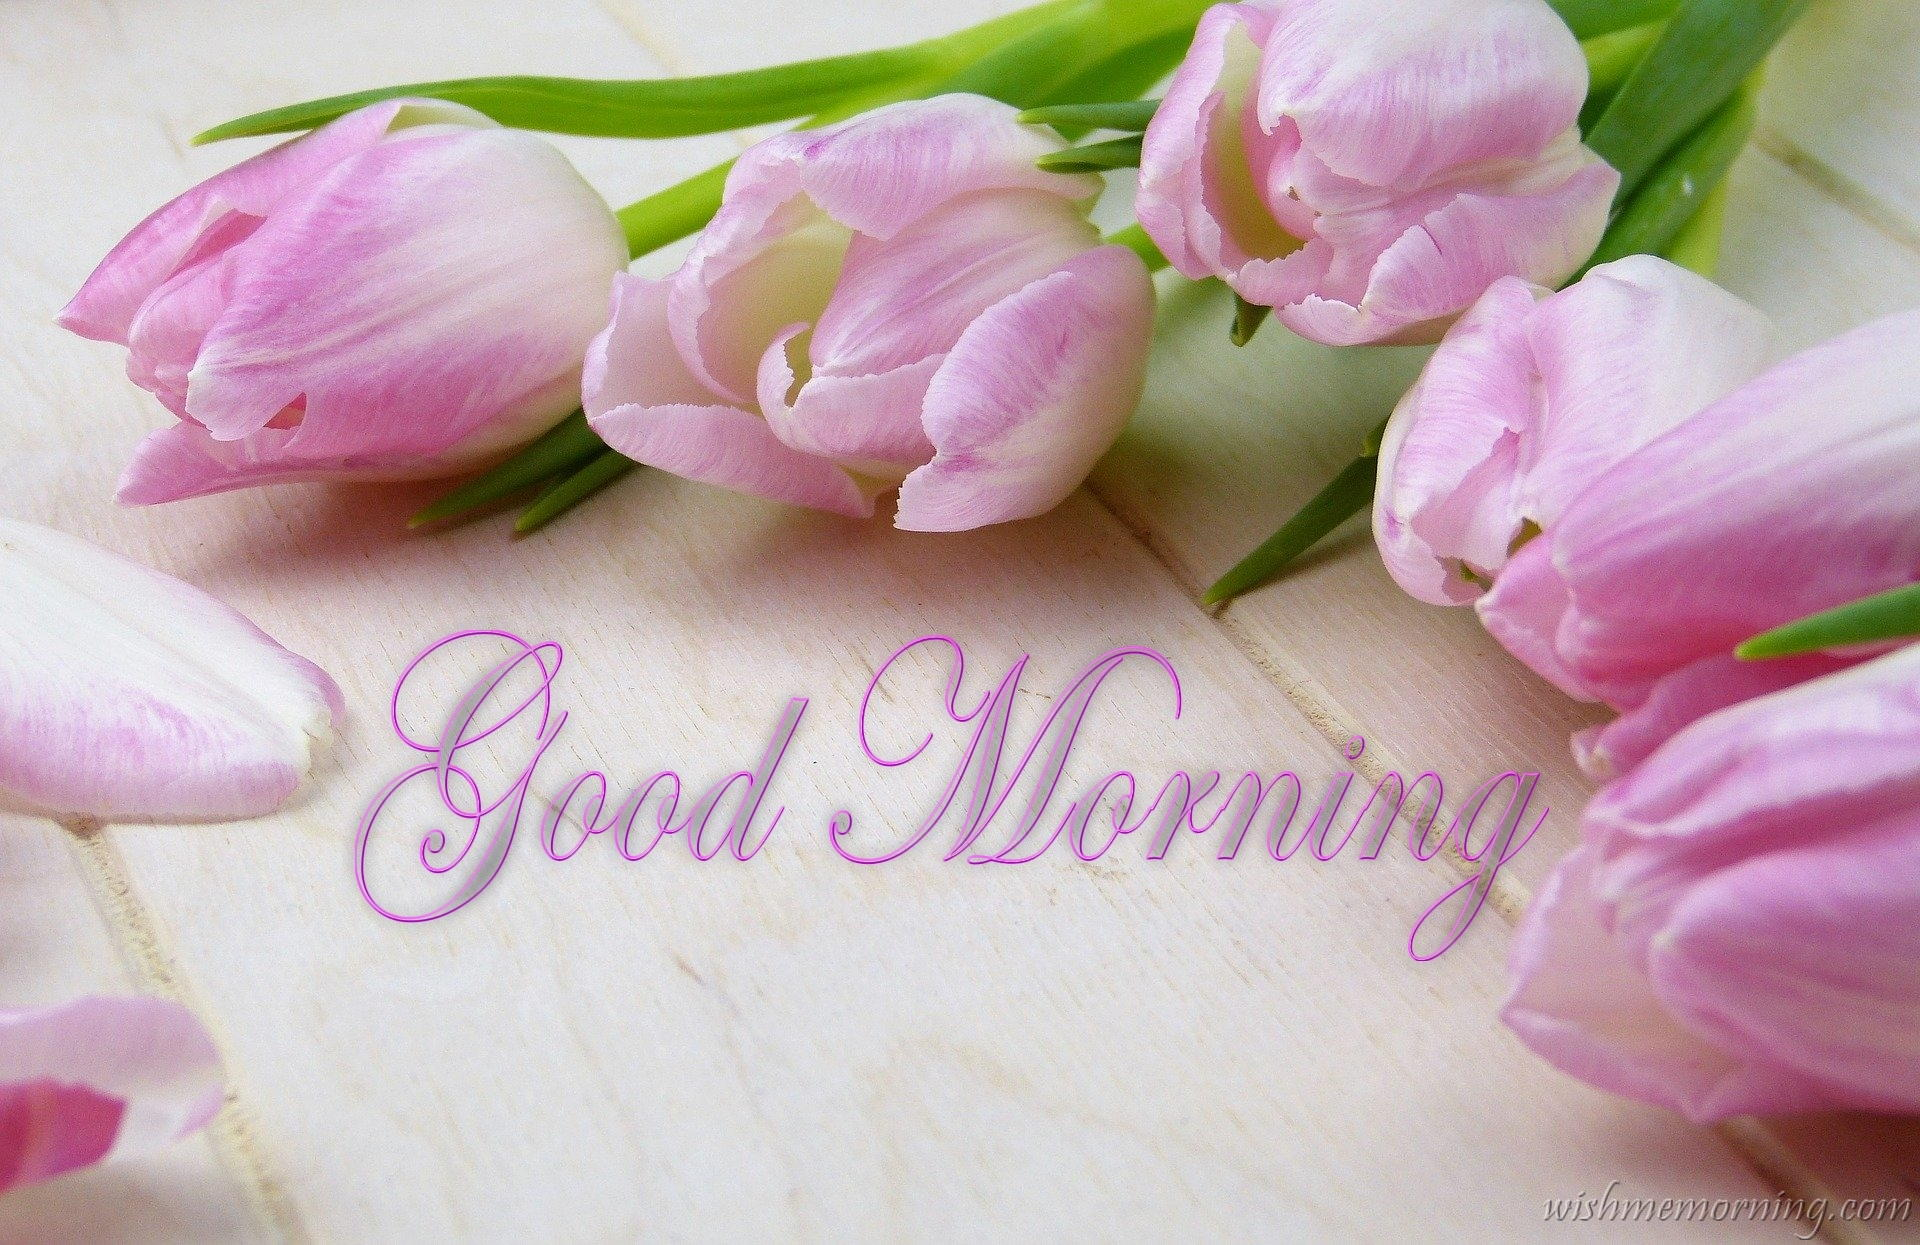 Violet Pink Tulip Flower on Table Good Morning Wish